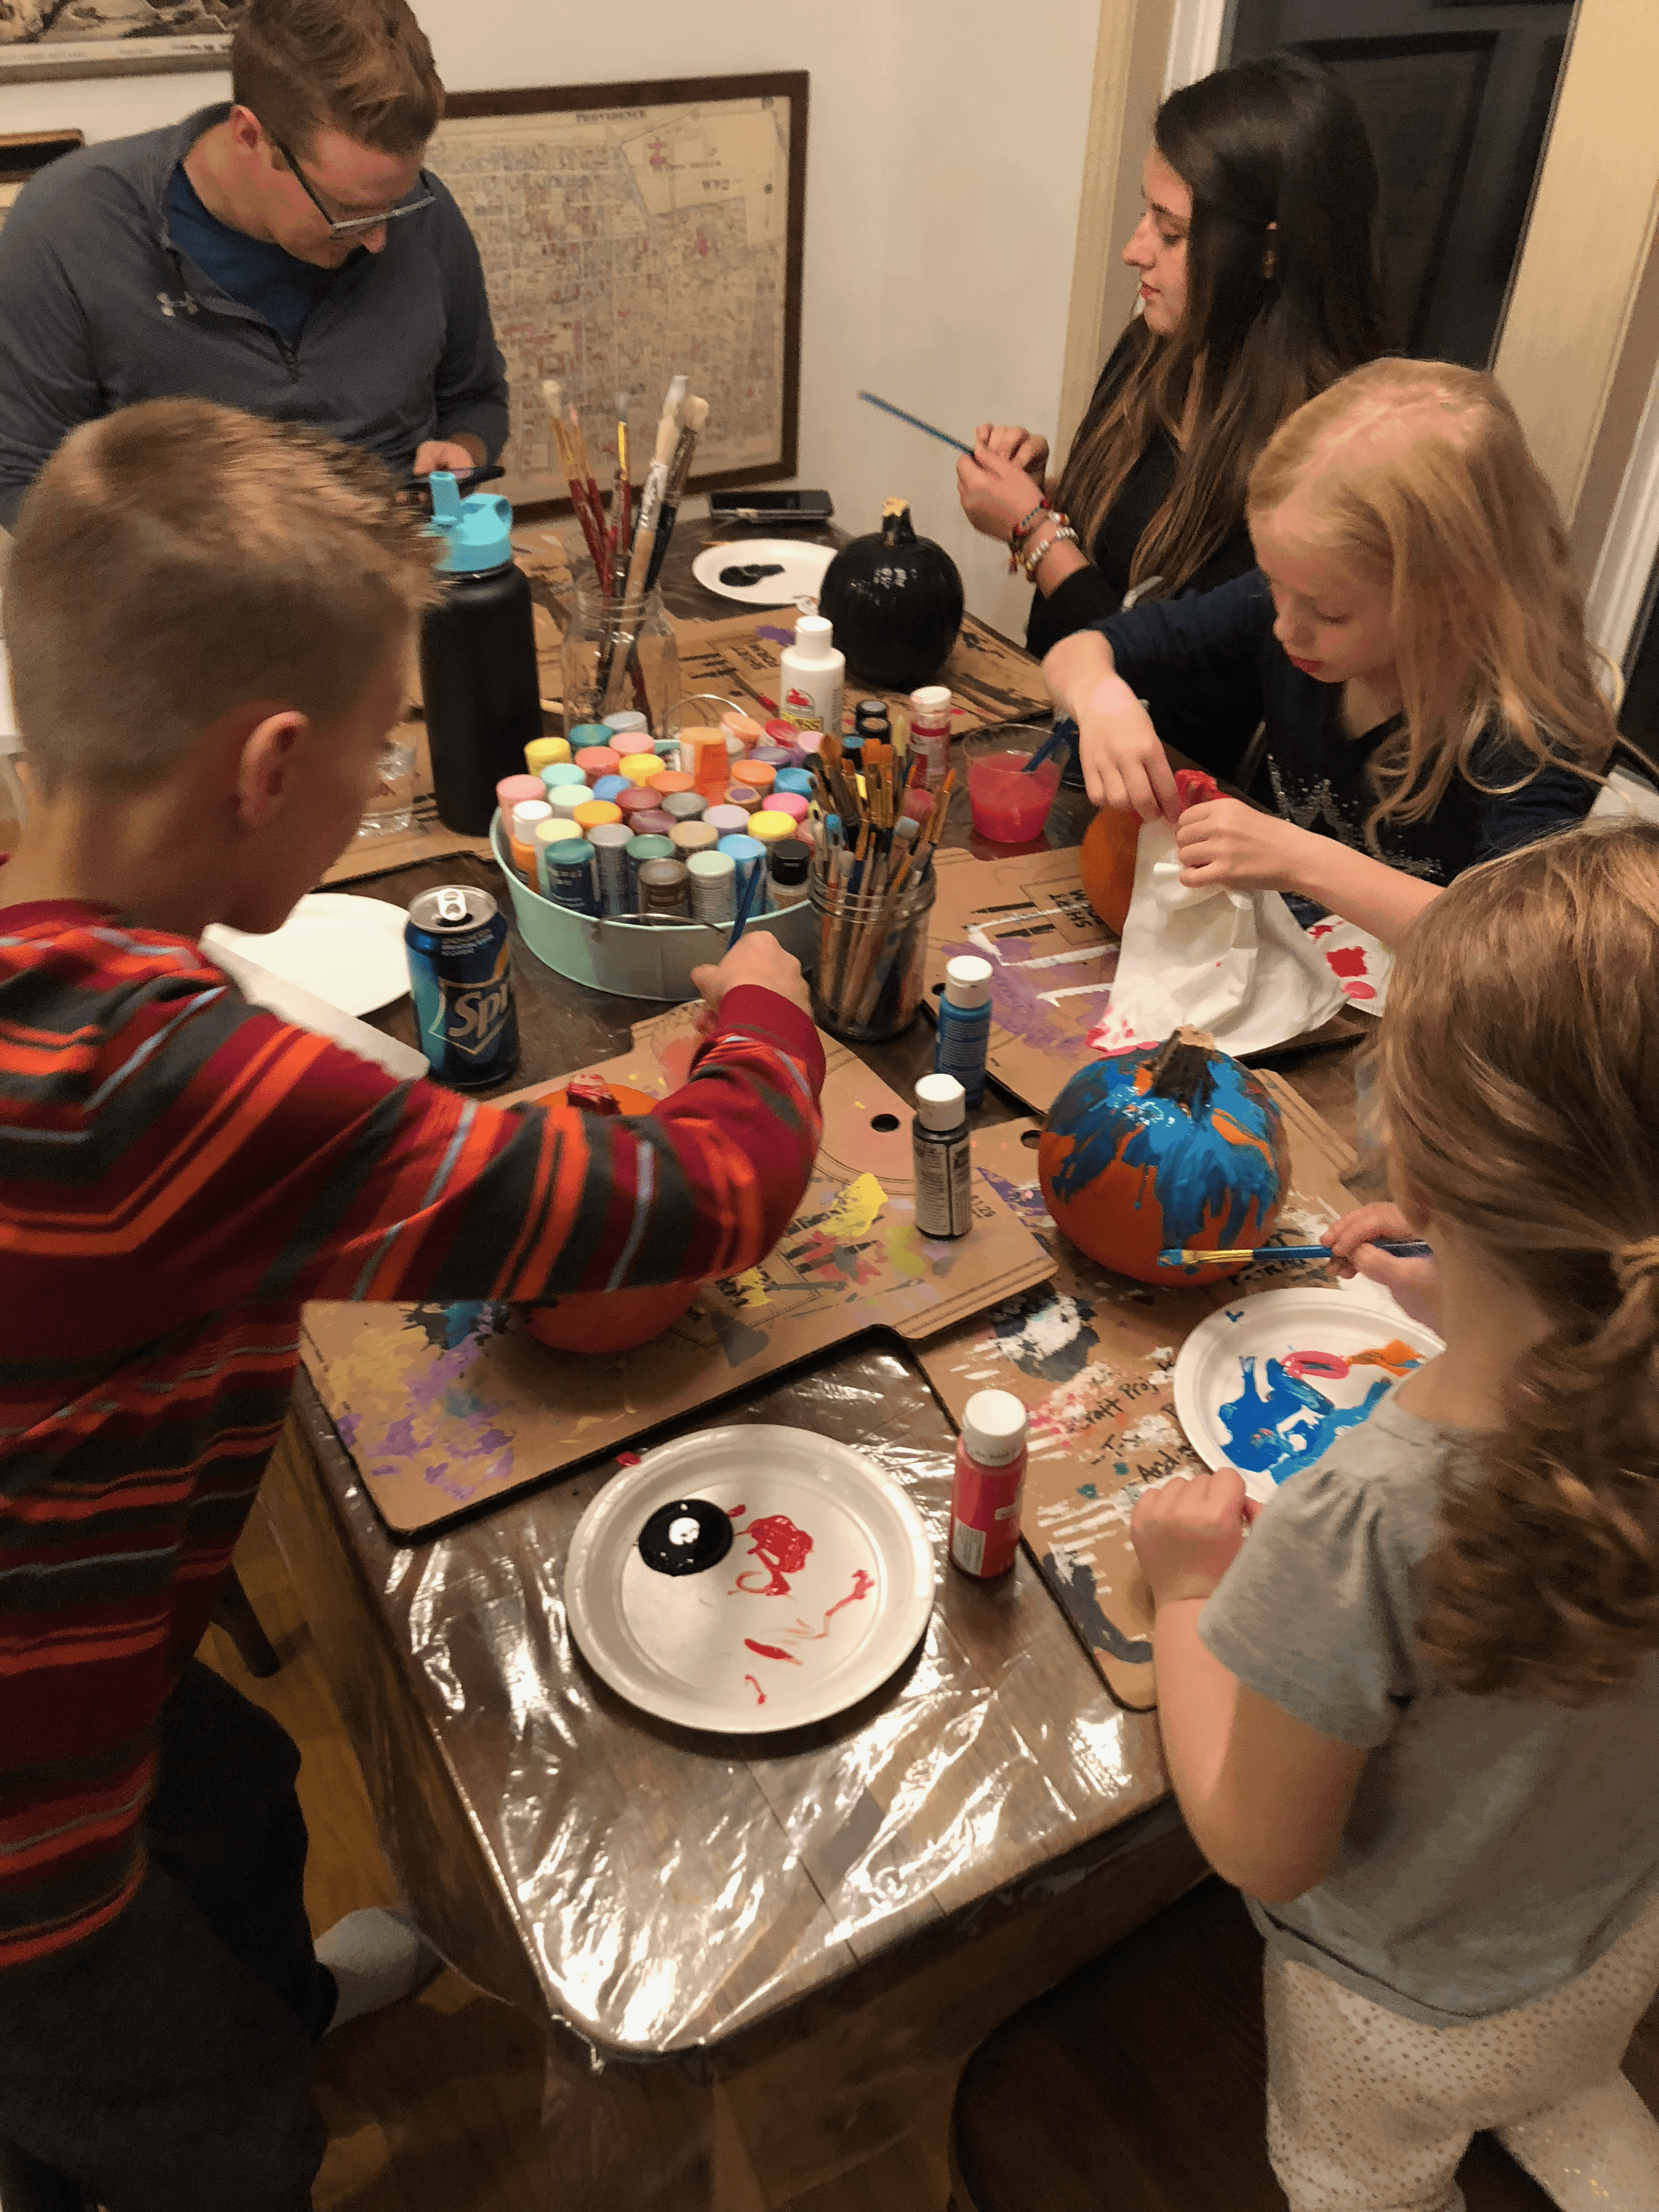 family gathered around kitchen table painting pumpkins